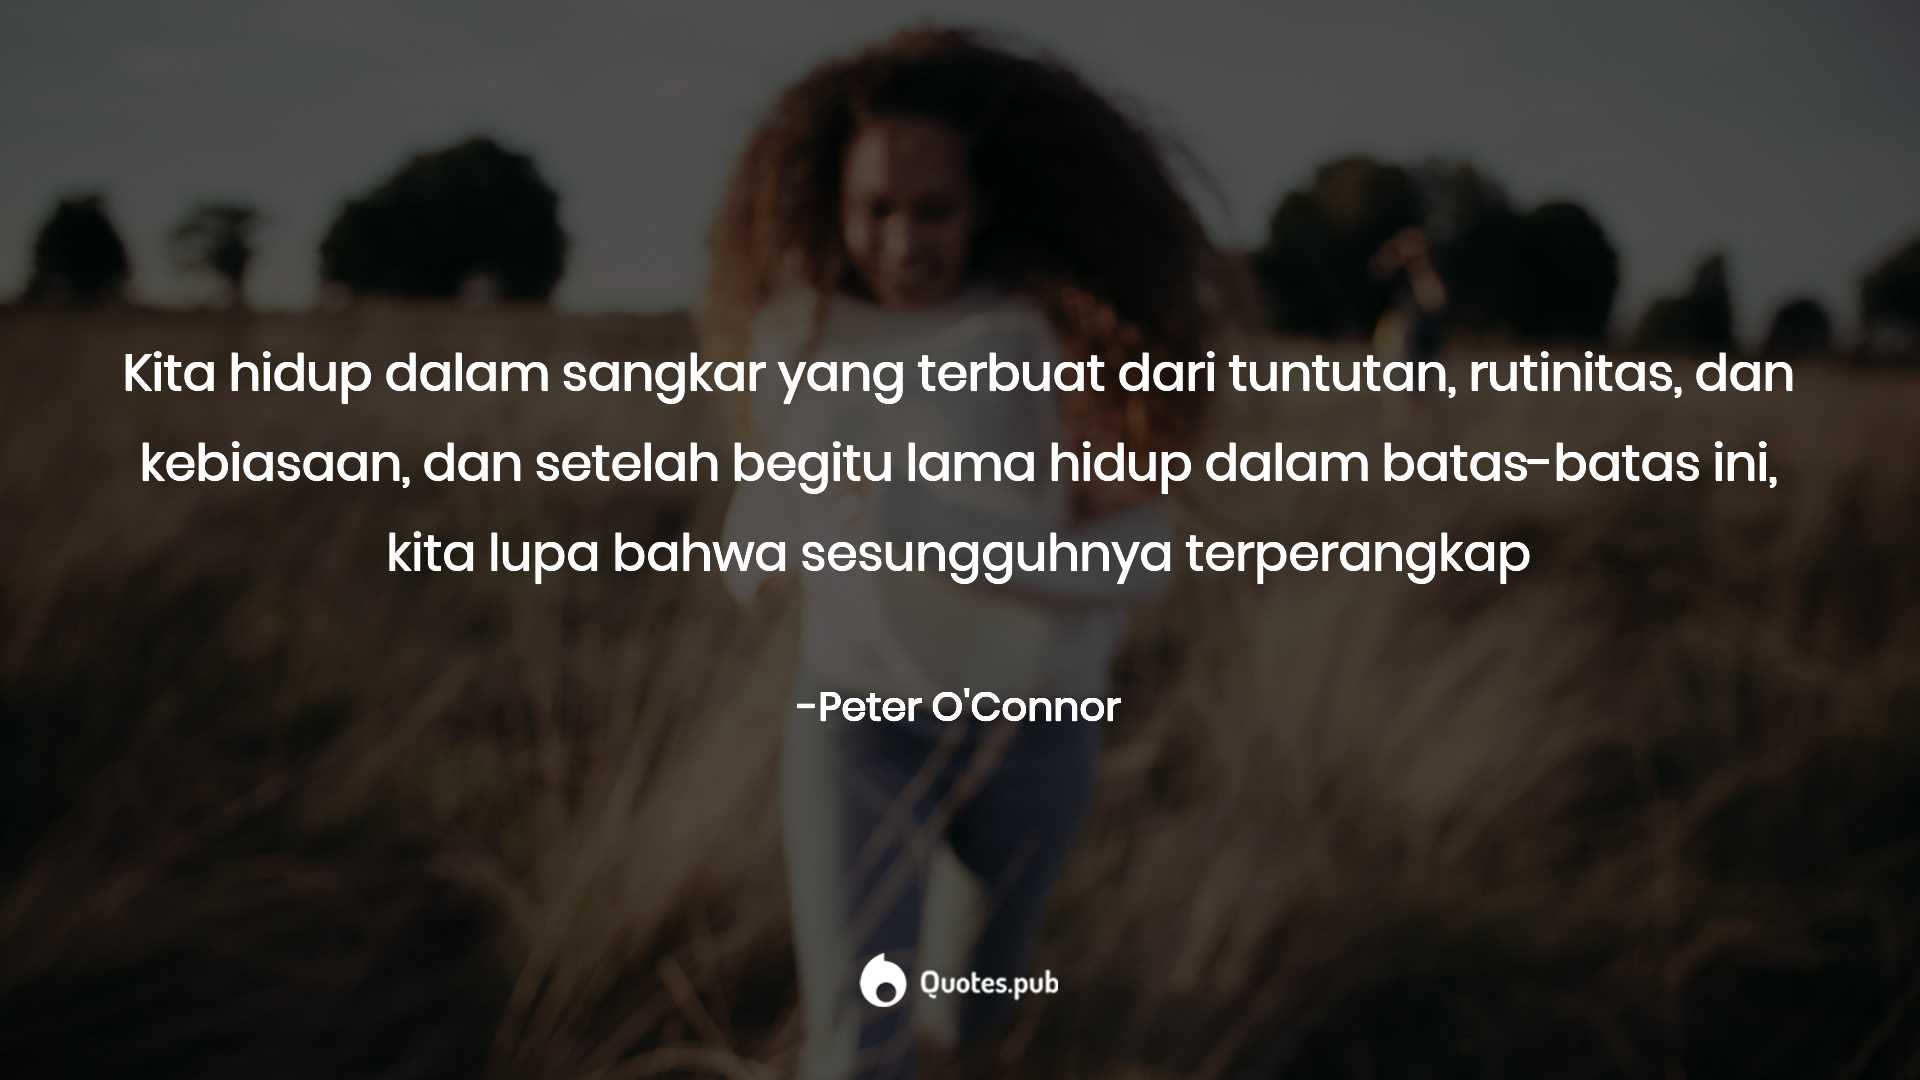 peter o connor quotes collection quotes pub